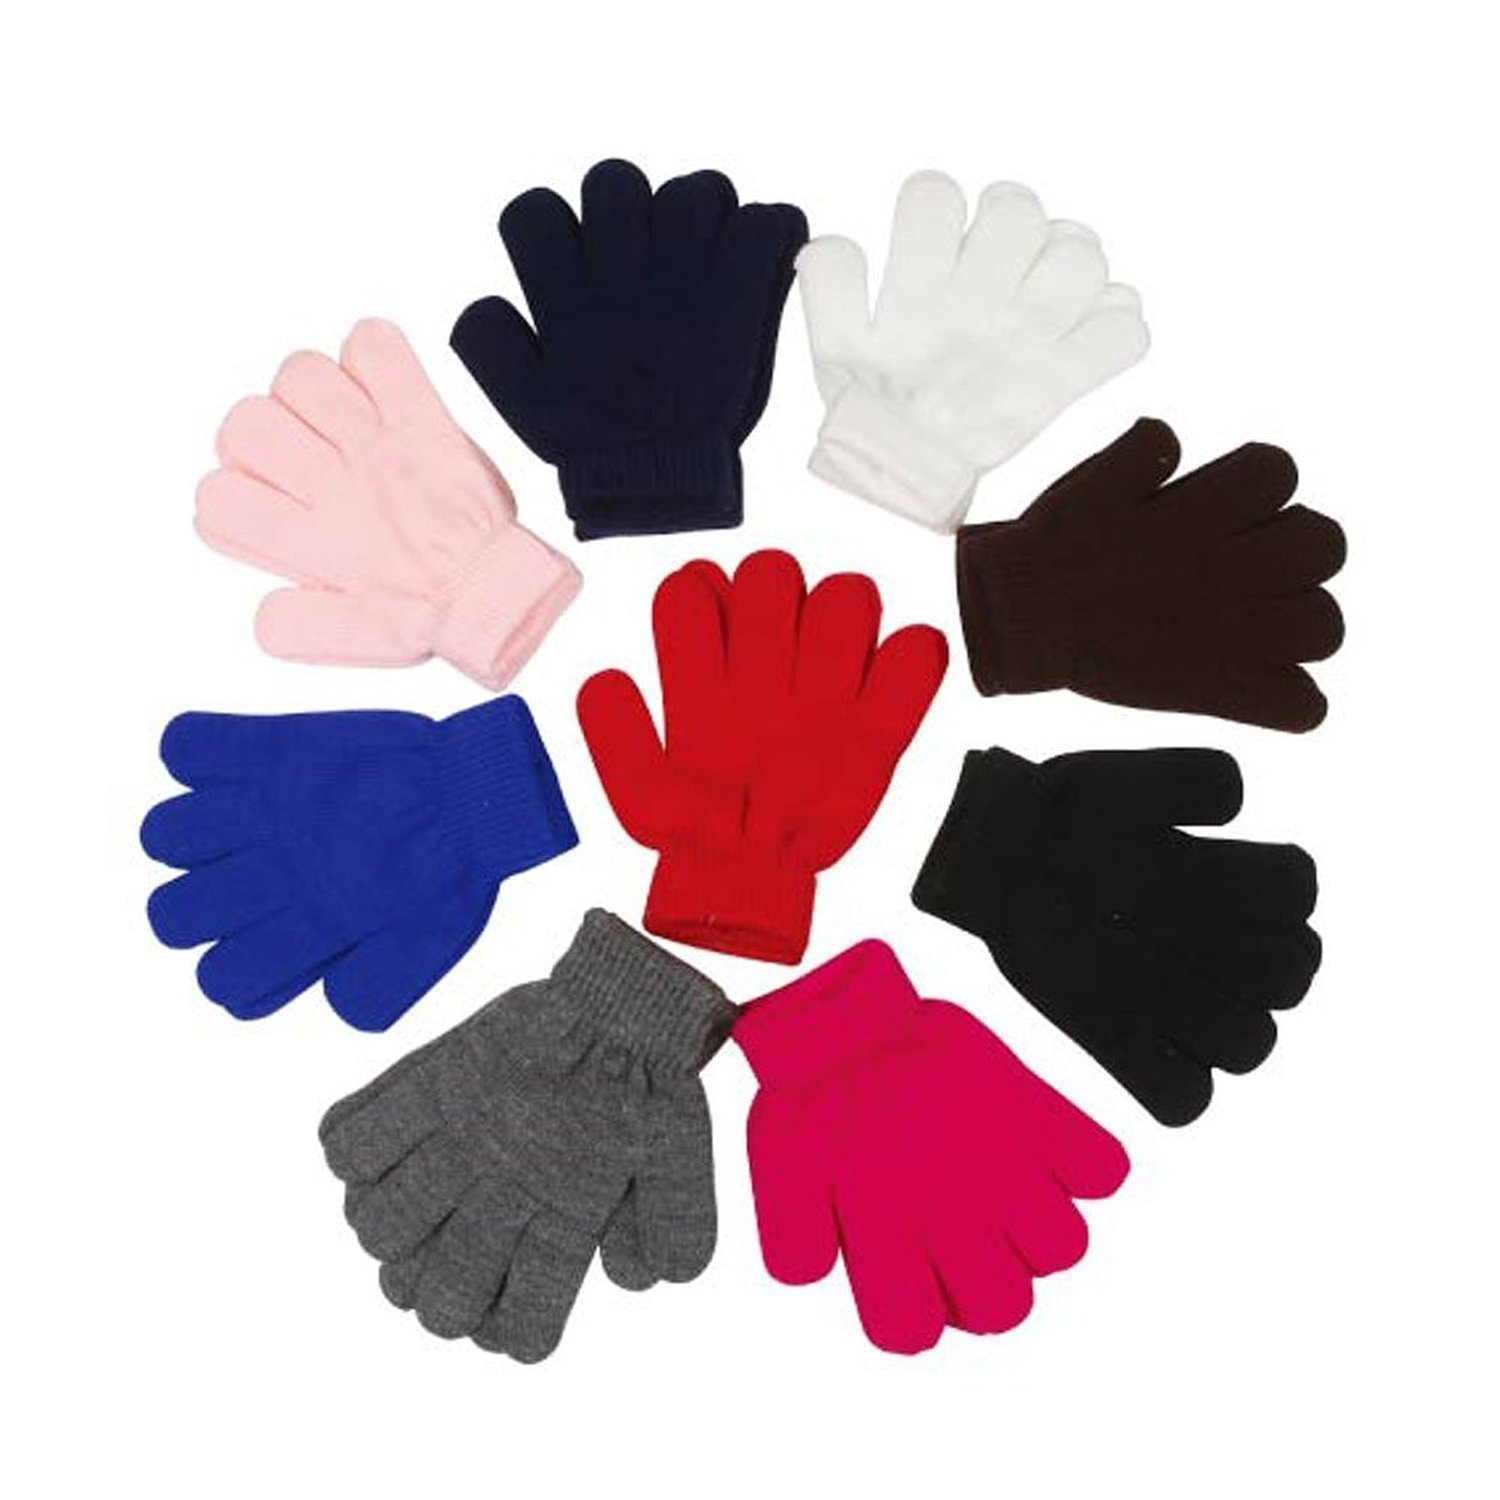 Children Warm Magic Gloves 12 Pairs Toddler Winter Gloves Baby Girls Knit Gloves(2 to 6 years old) (Rainbow Assorted)